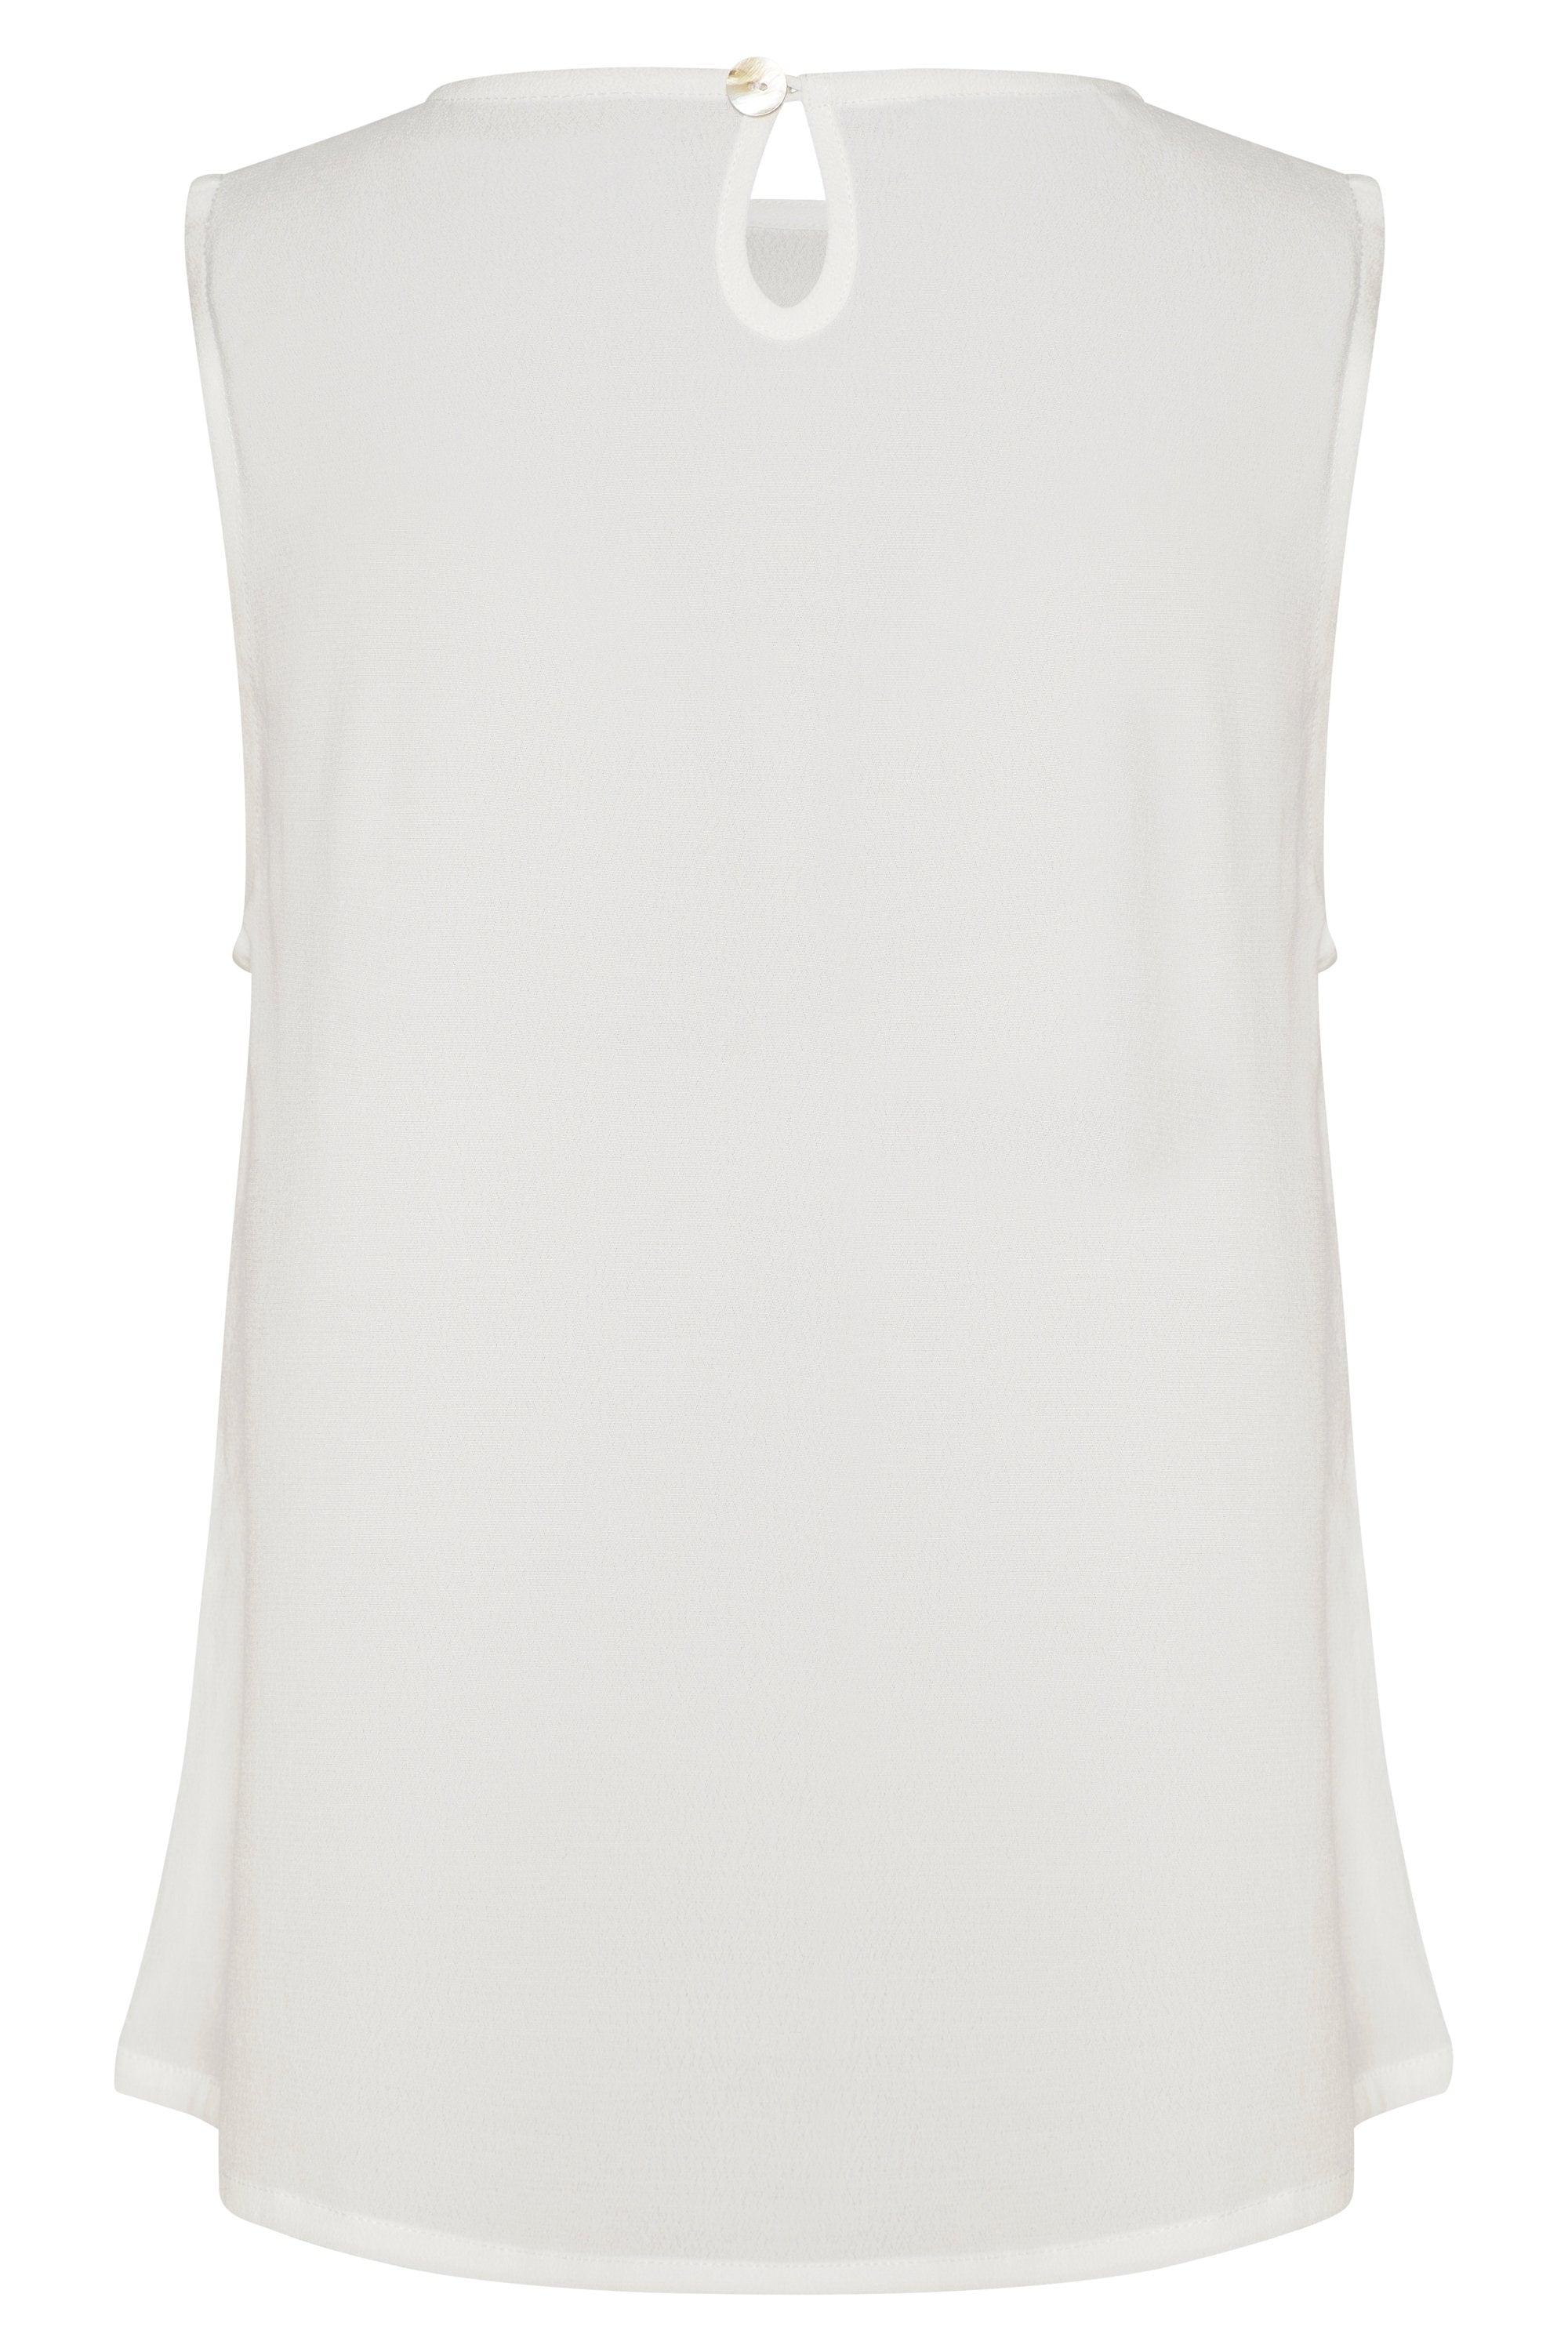 Sleeveless Tina Top In White